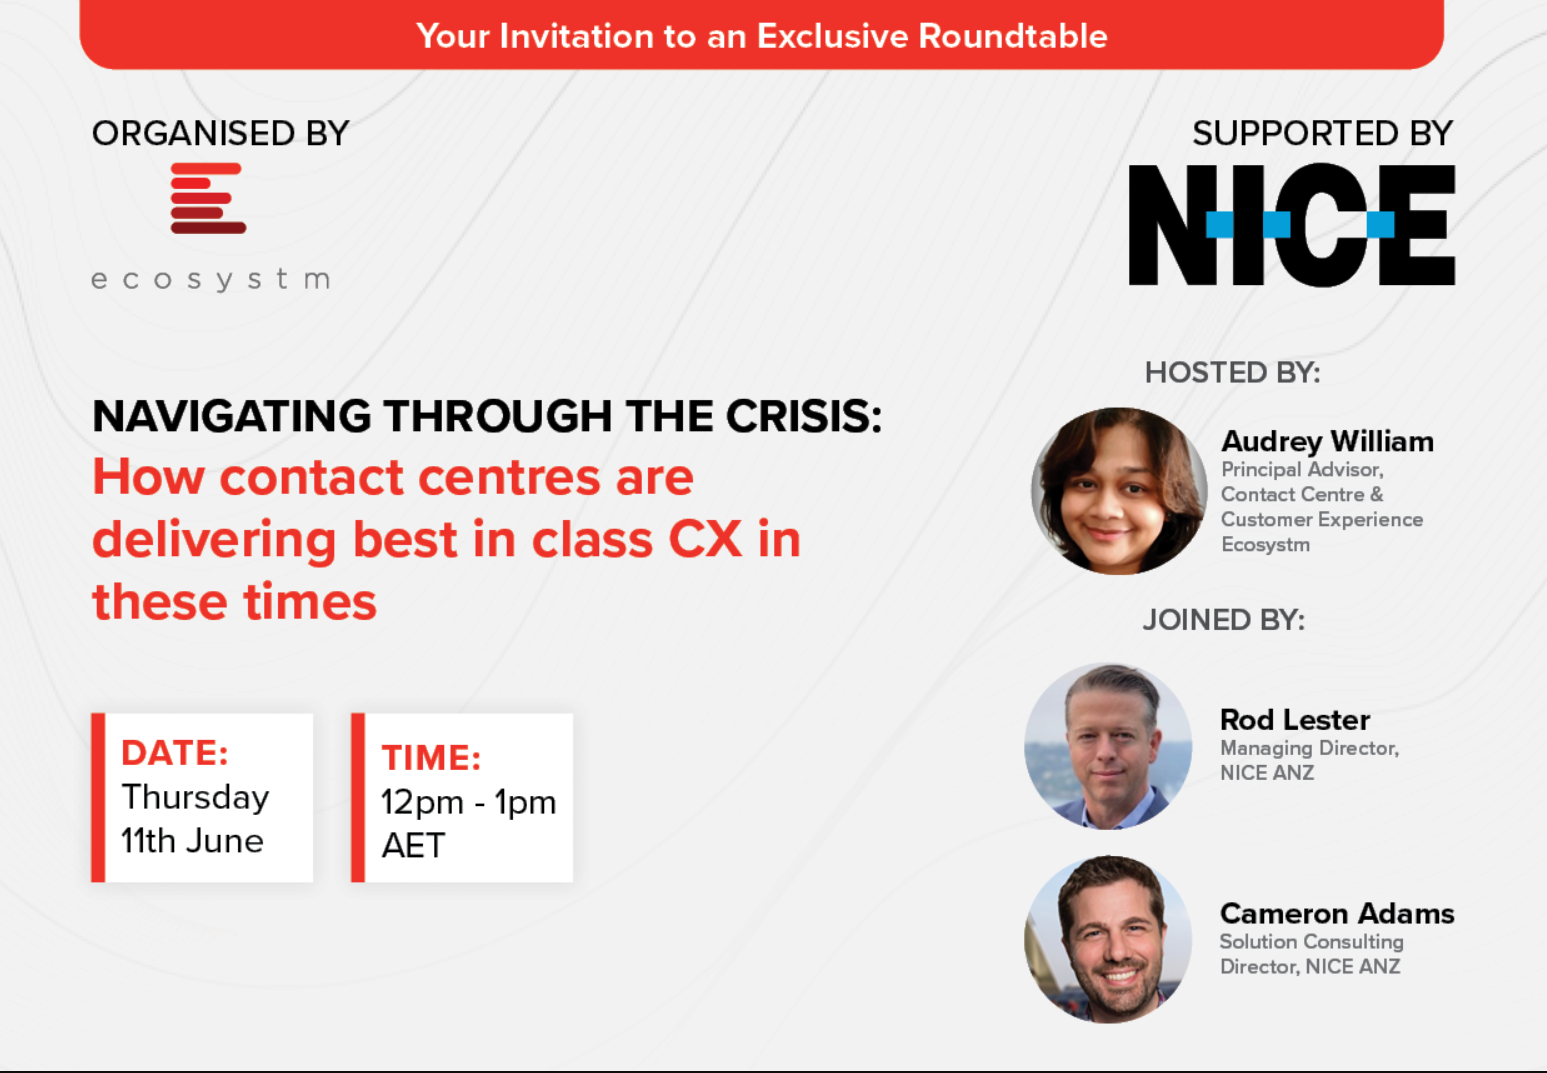 NICE Virtual Roundtable - How Contact Centres are delivering CX